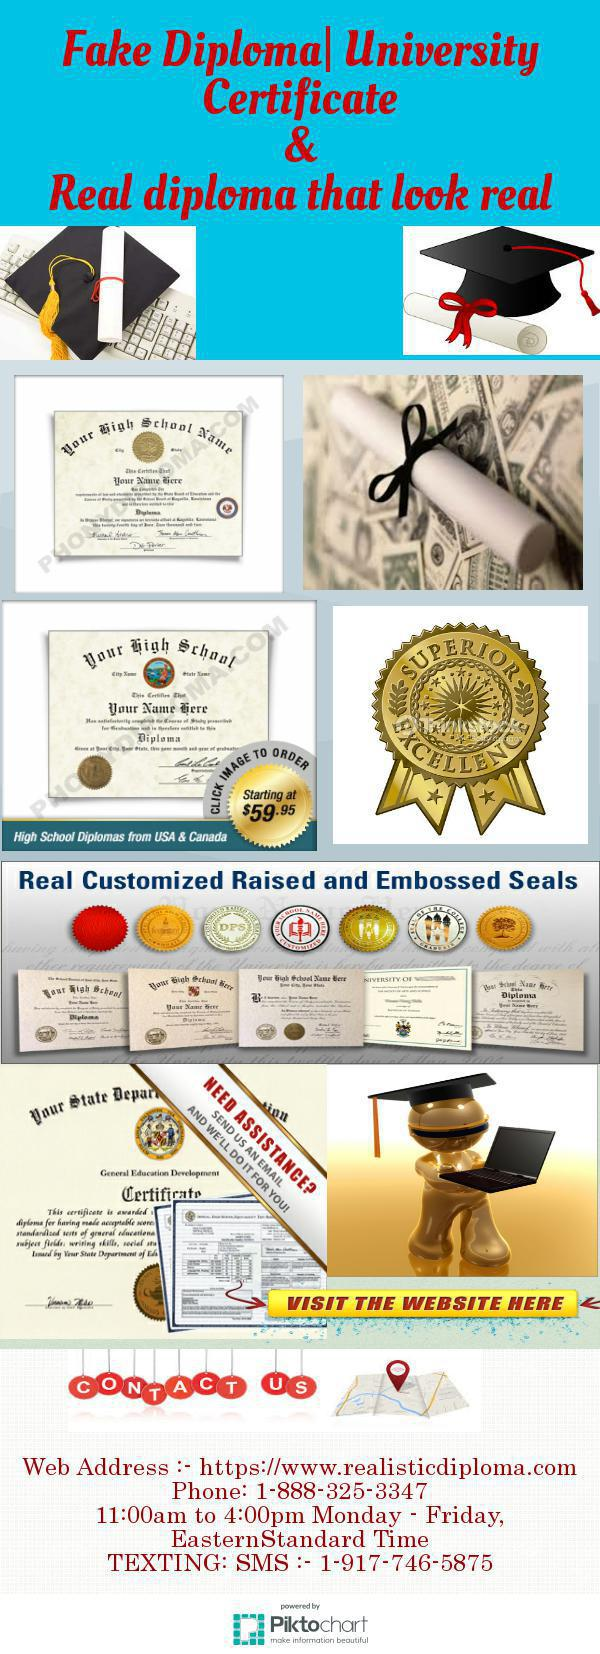 fake diplomas We can make fake diploma,fake diploma and transcript,fake degree, buy fake diploma buy fake degree from our company is easy and safewe have thousands of samples form aus, cad,usa, uk and other country universities.